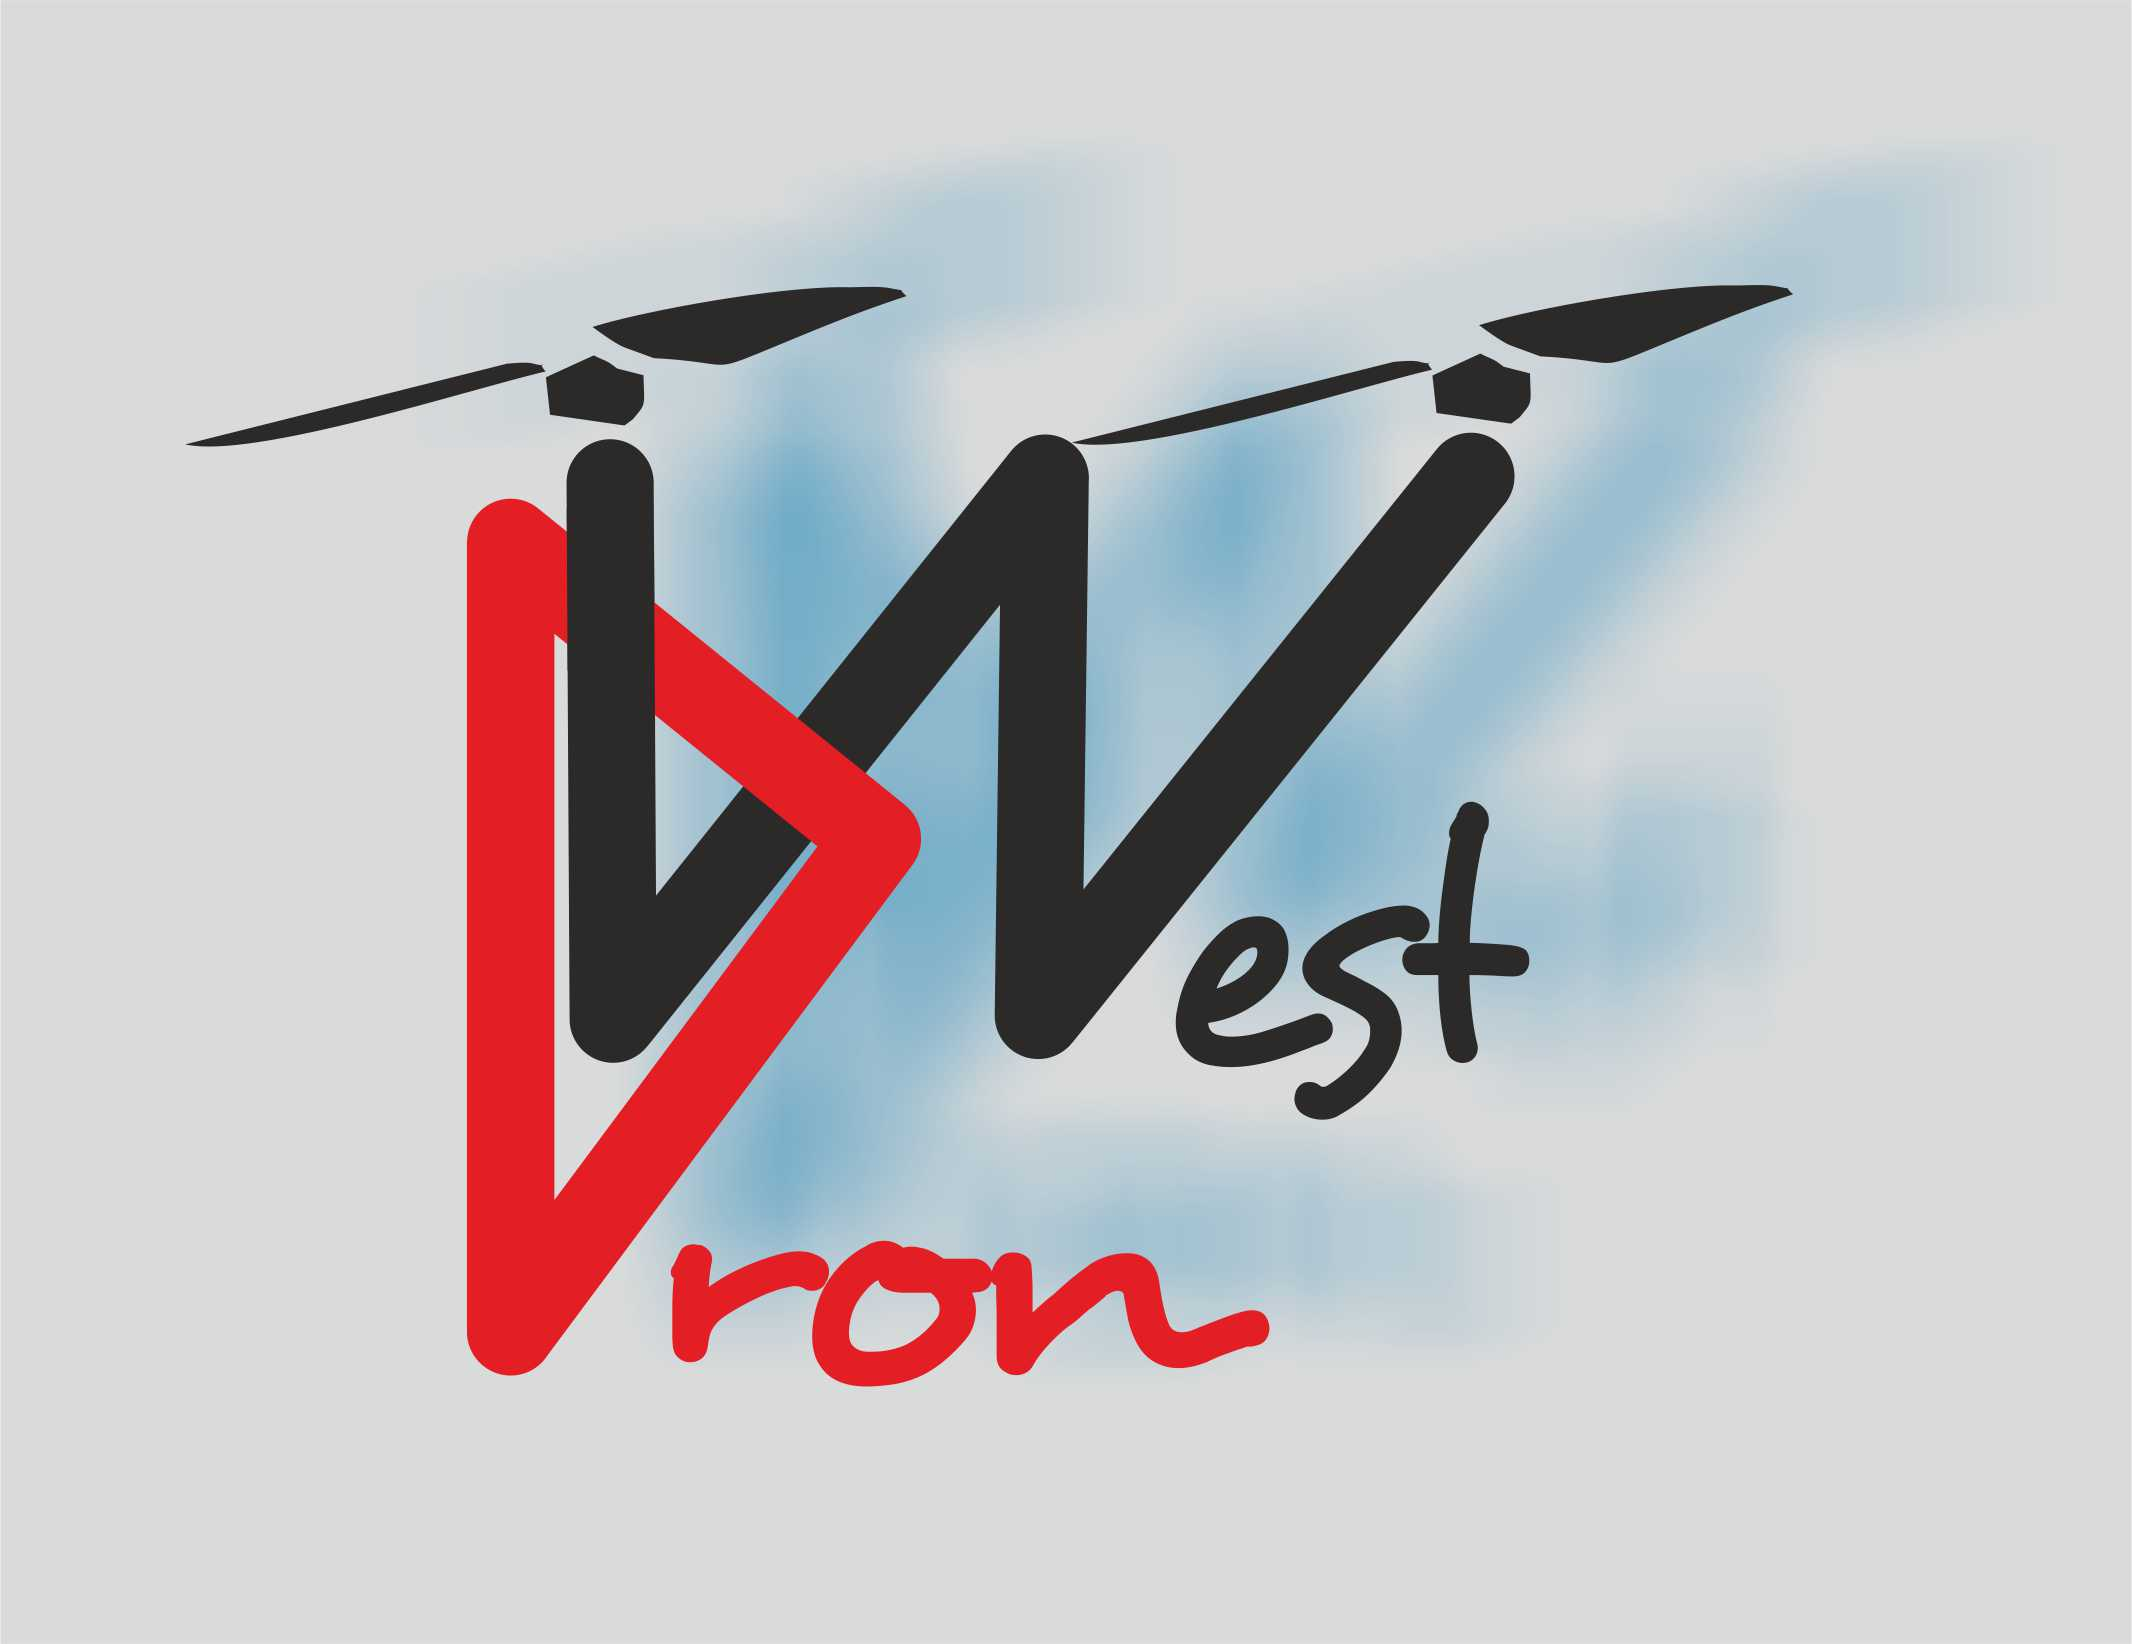 logo dron west